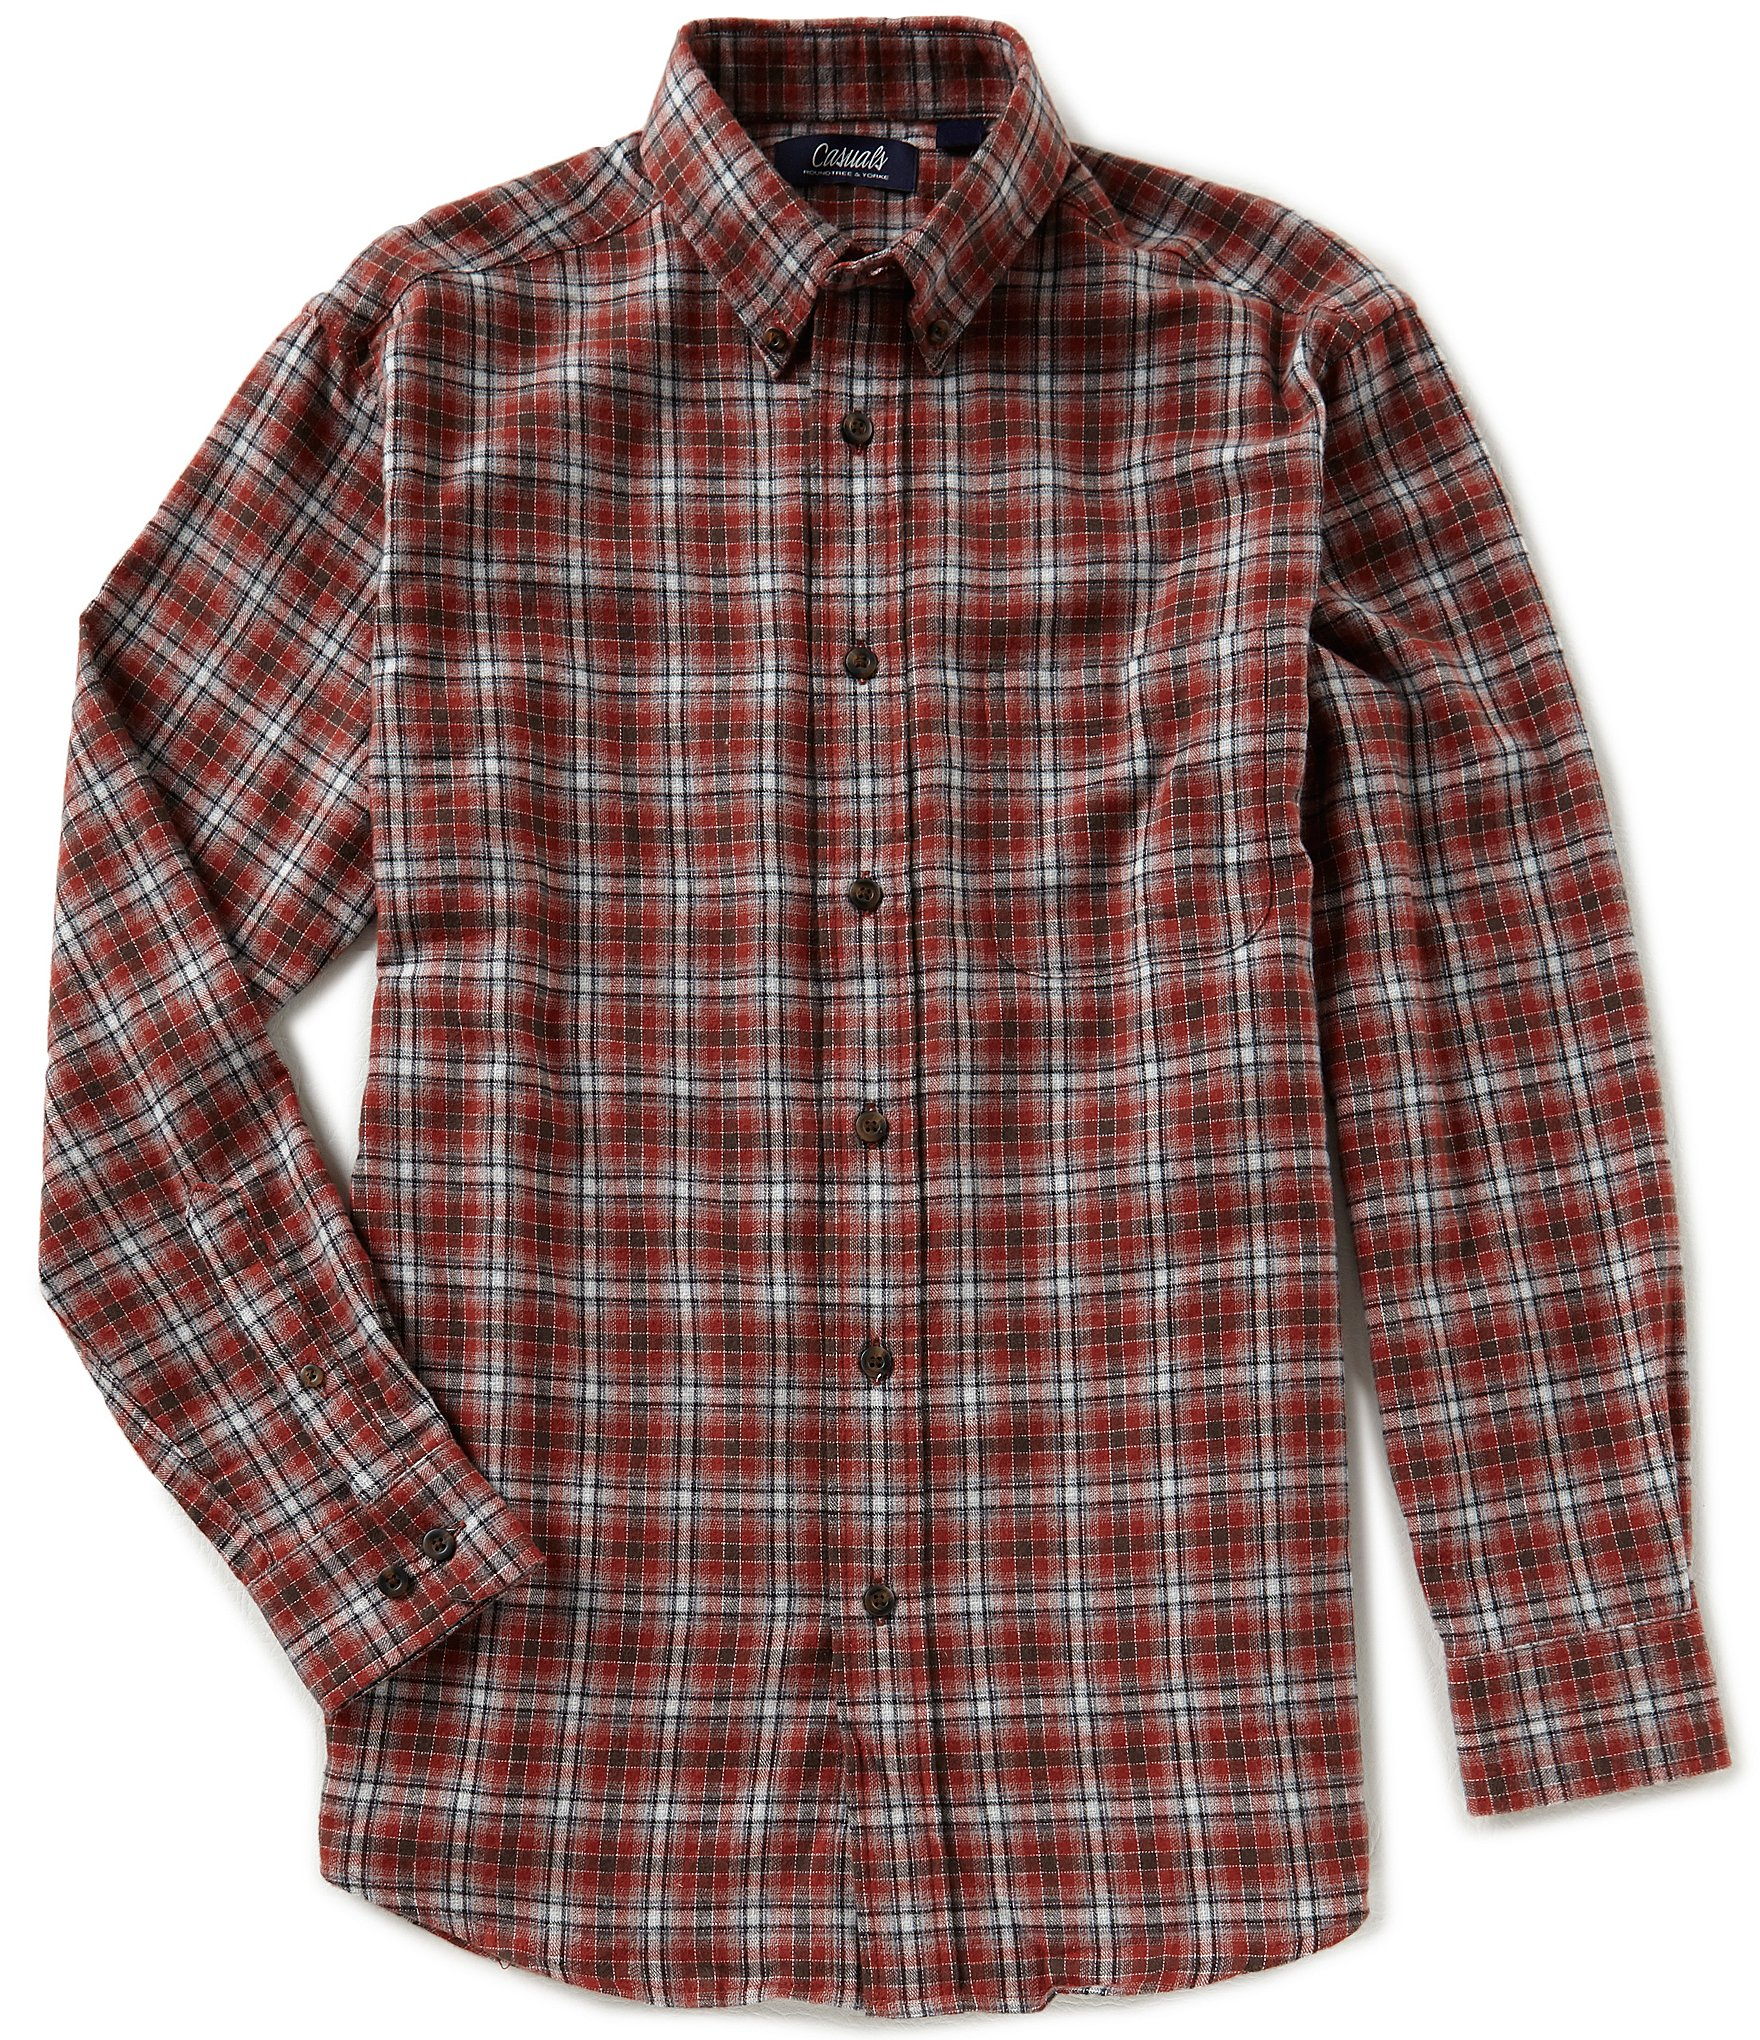 Roundtree yorke casuals big tall long sleeve medium for Mens 4xlt flannel shirts